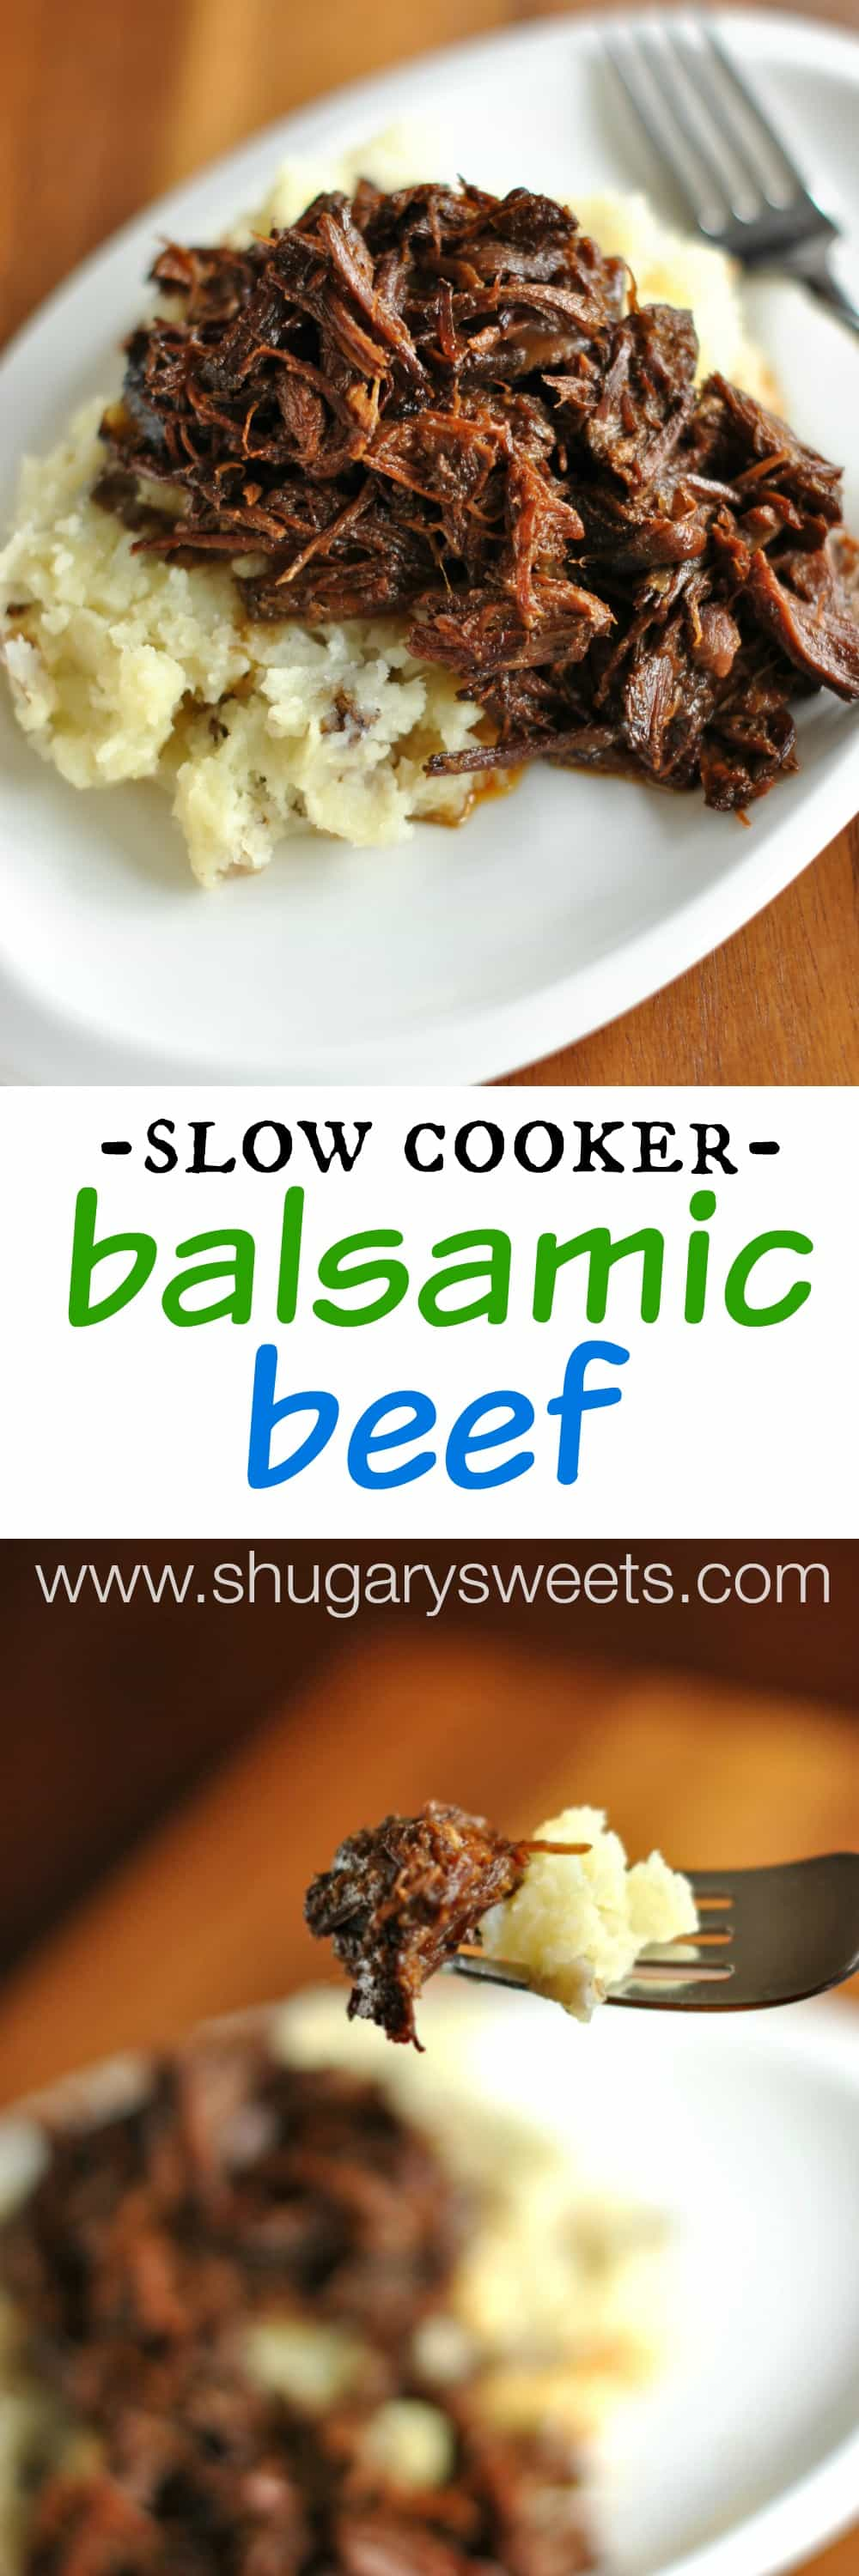 Slow Cooker Beef Pot Roast: Slow Cooker Balsamic Shredded Beef